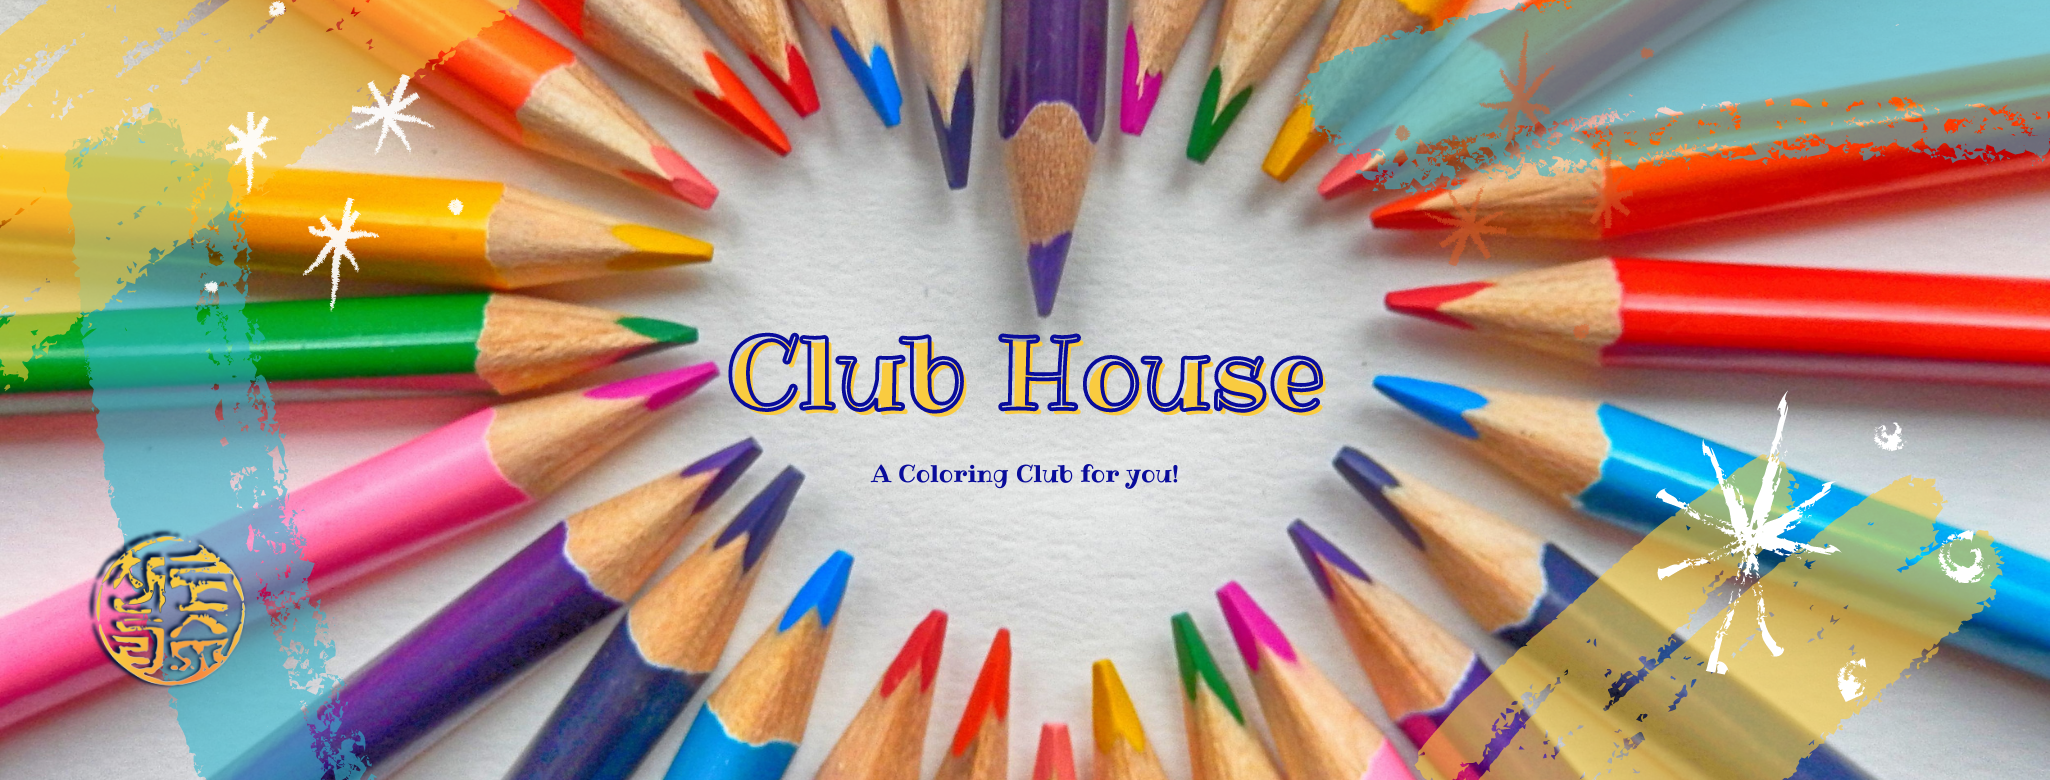 Club House a coloring club for you